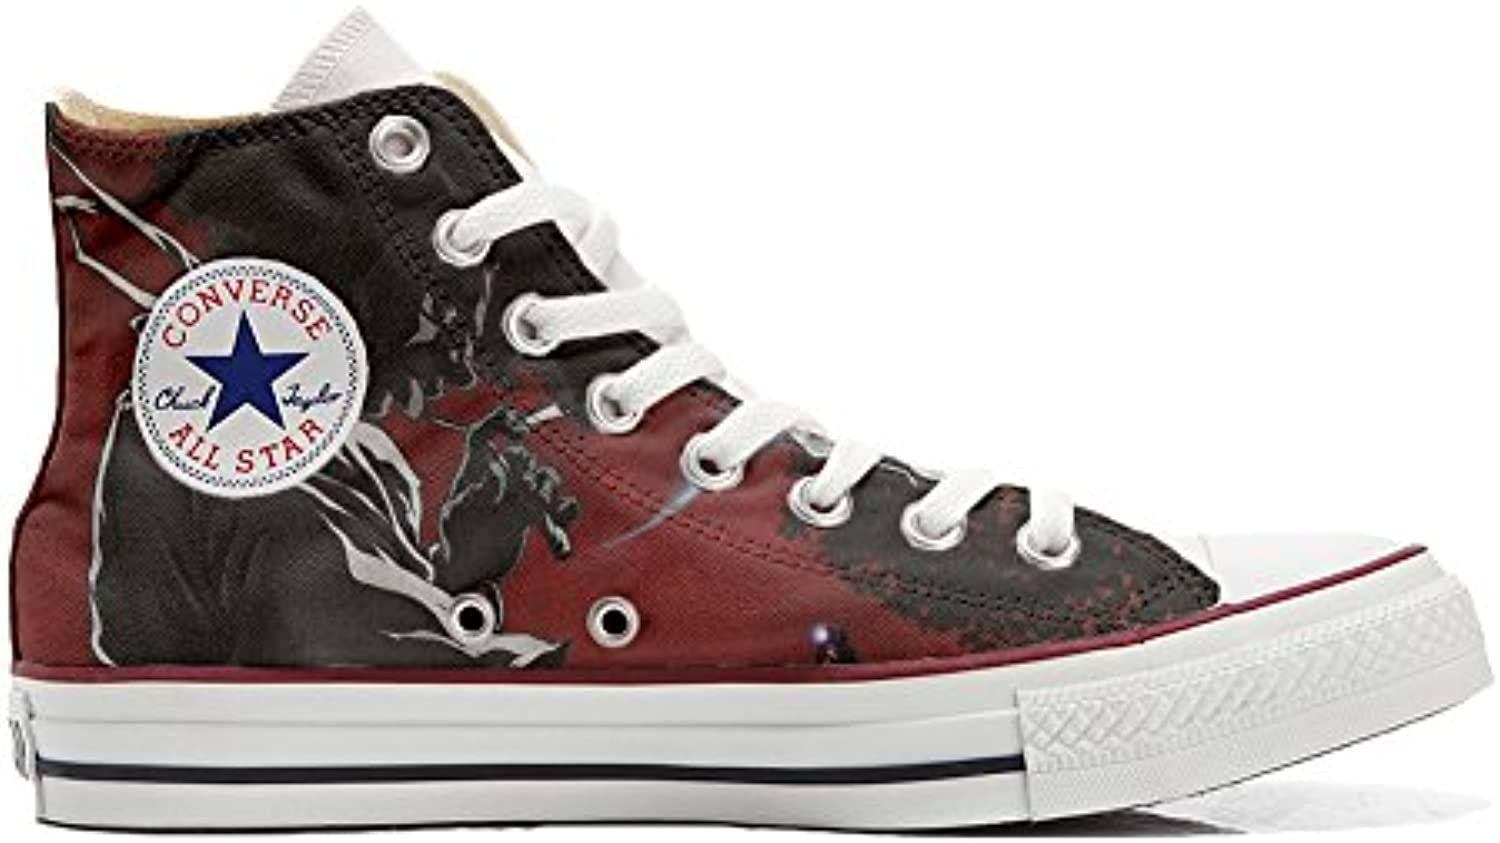 Converse All Star Customized Unisex   Personalisierte Schuhe (Handwerk Produkt) Demon   Size EU 32